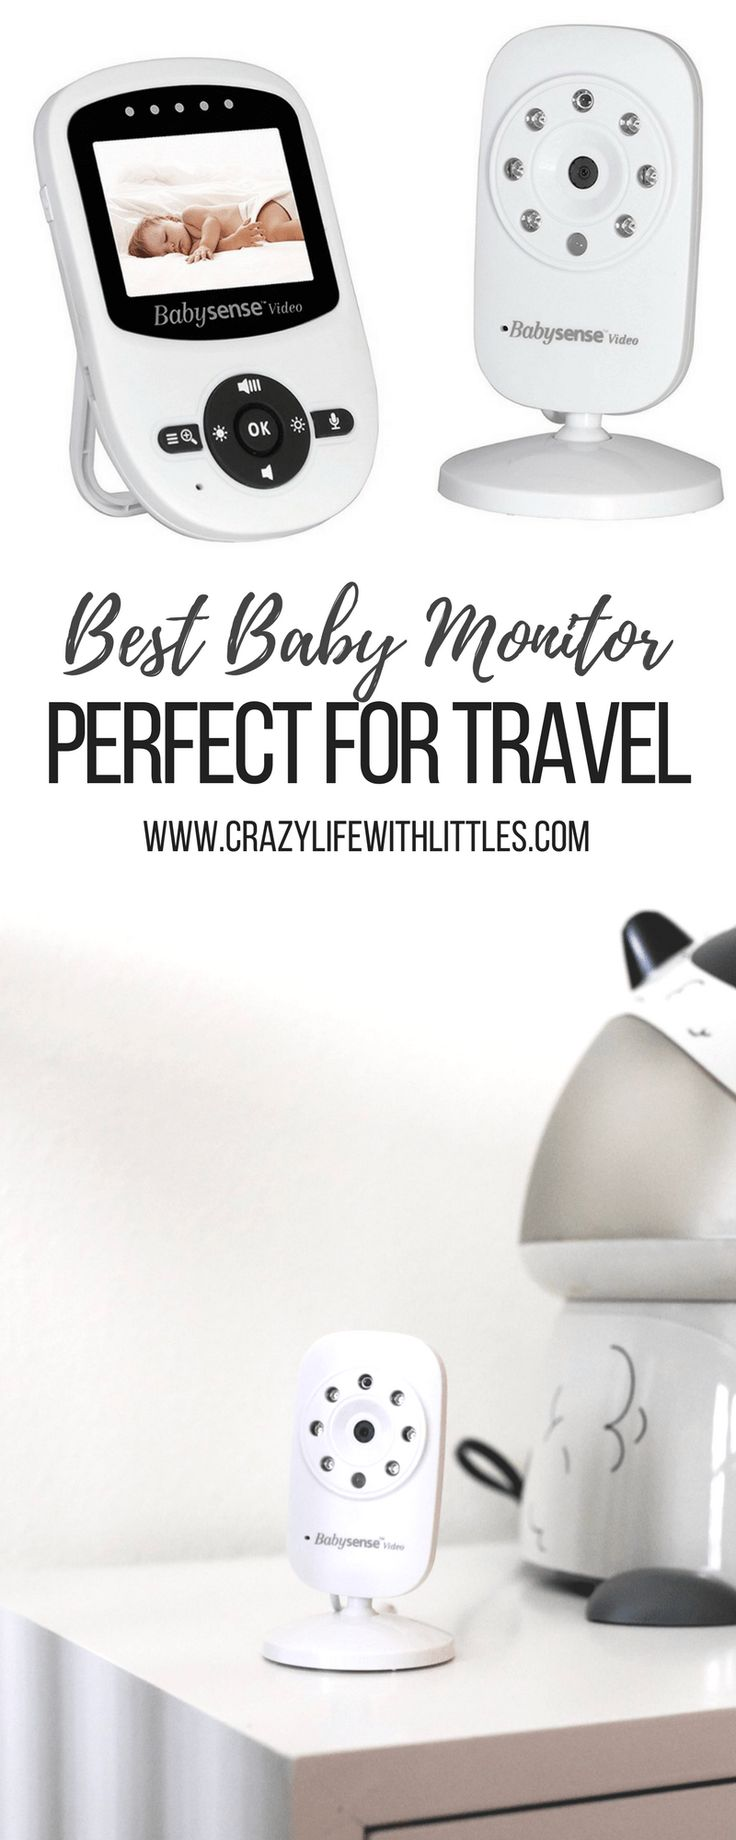 #videomonitor #babymonitor #babymusthaves The Babysense Video Monitor is the best affordable, reliable, and lightweight video monitor making it perfect for travel.